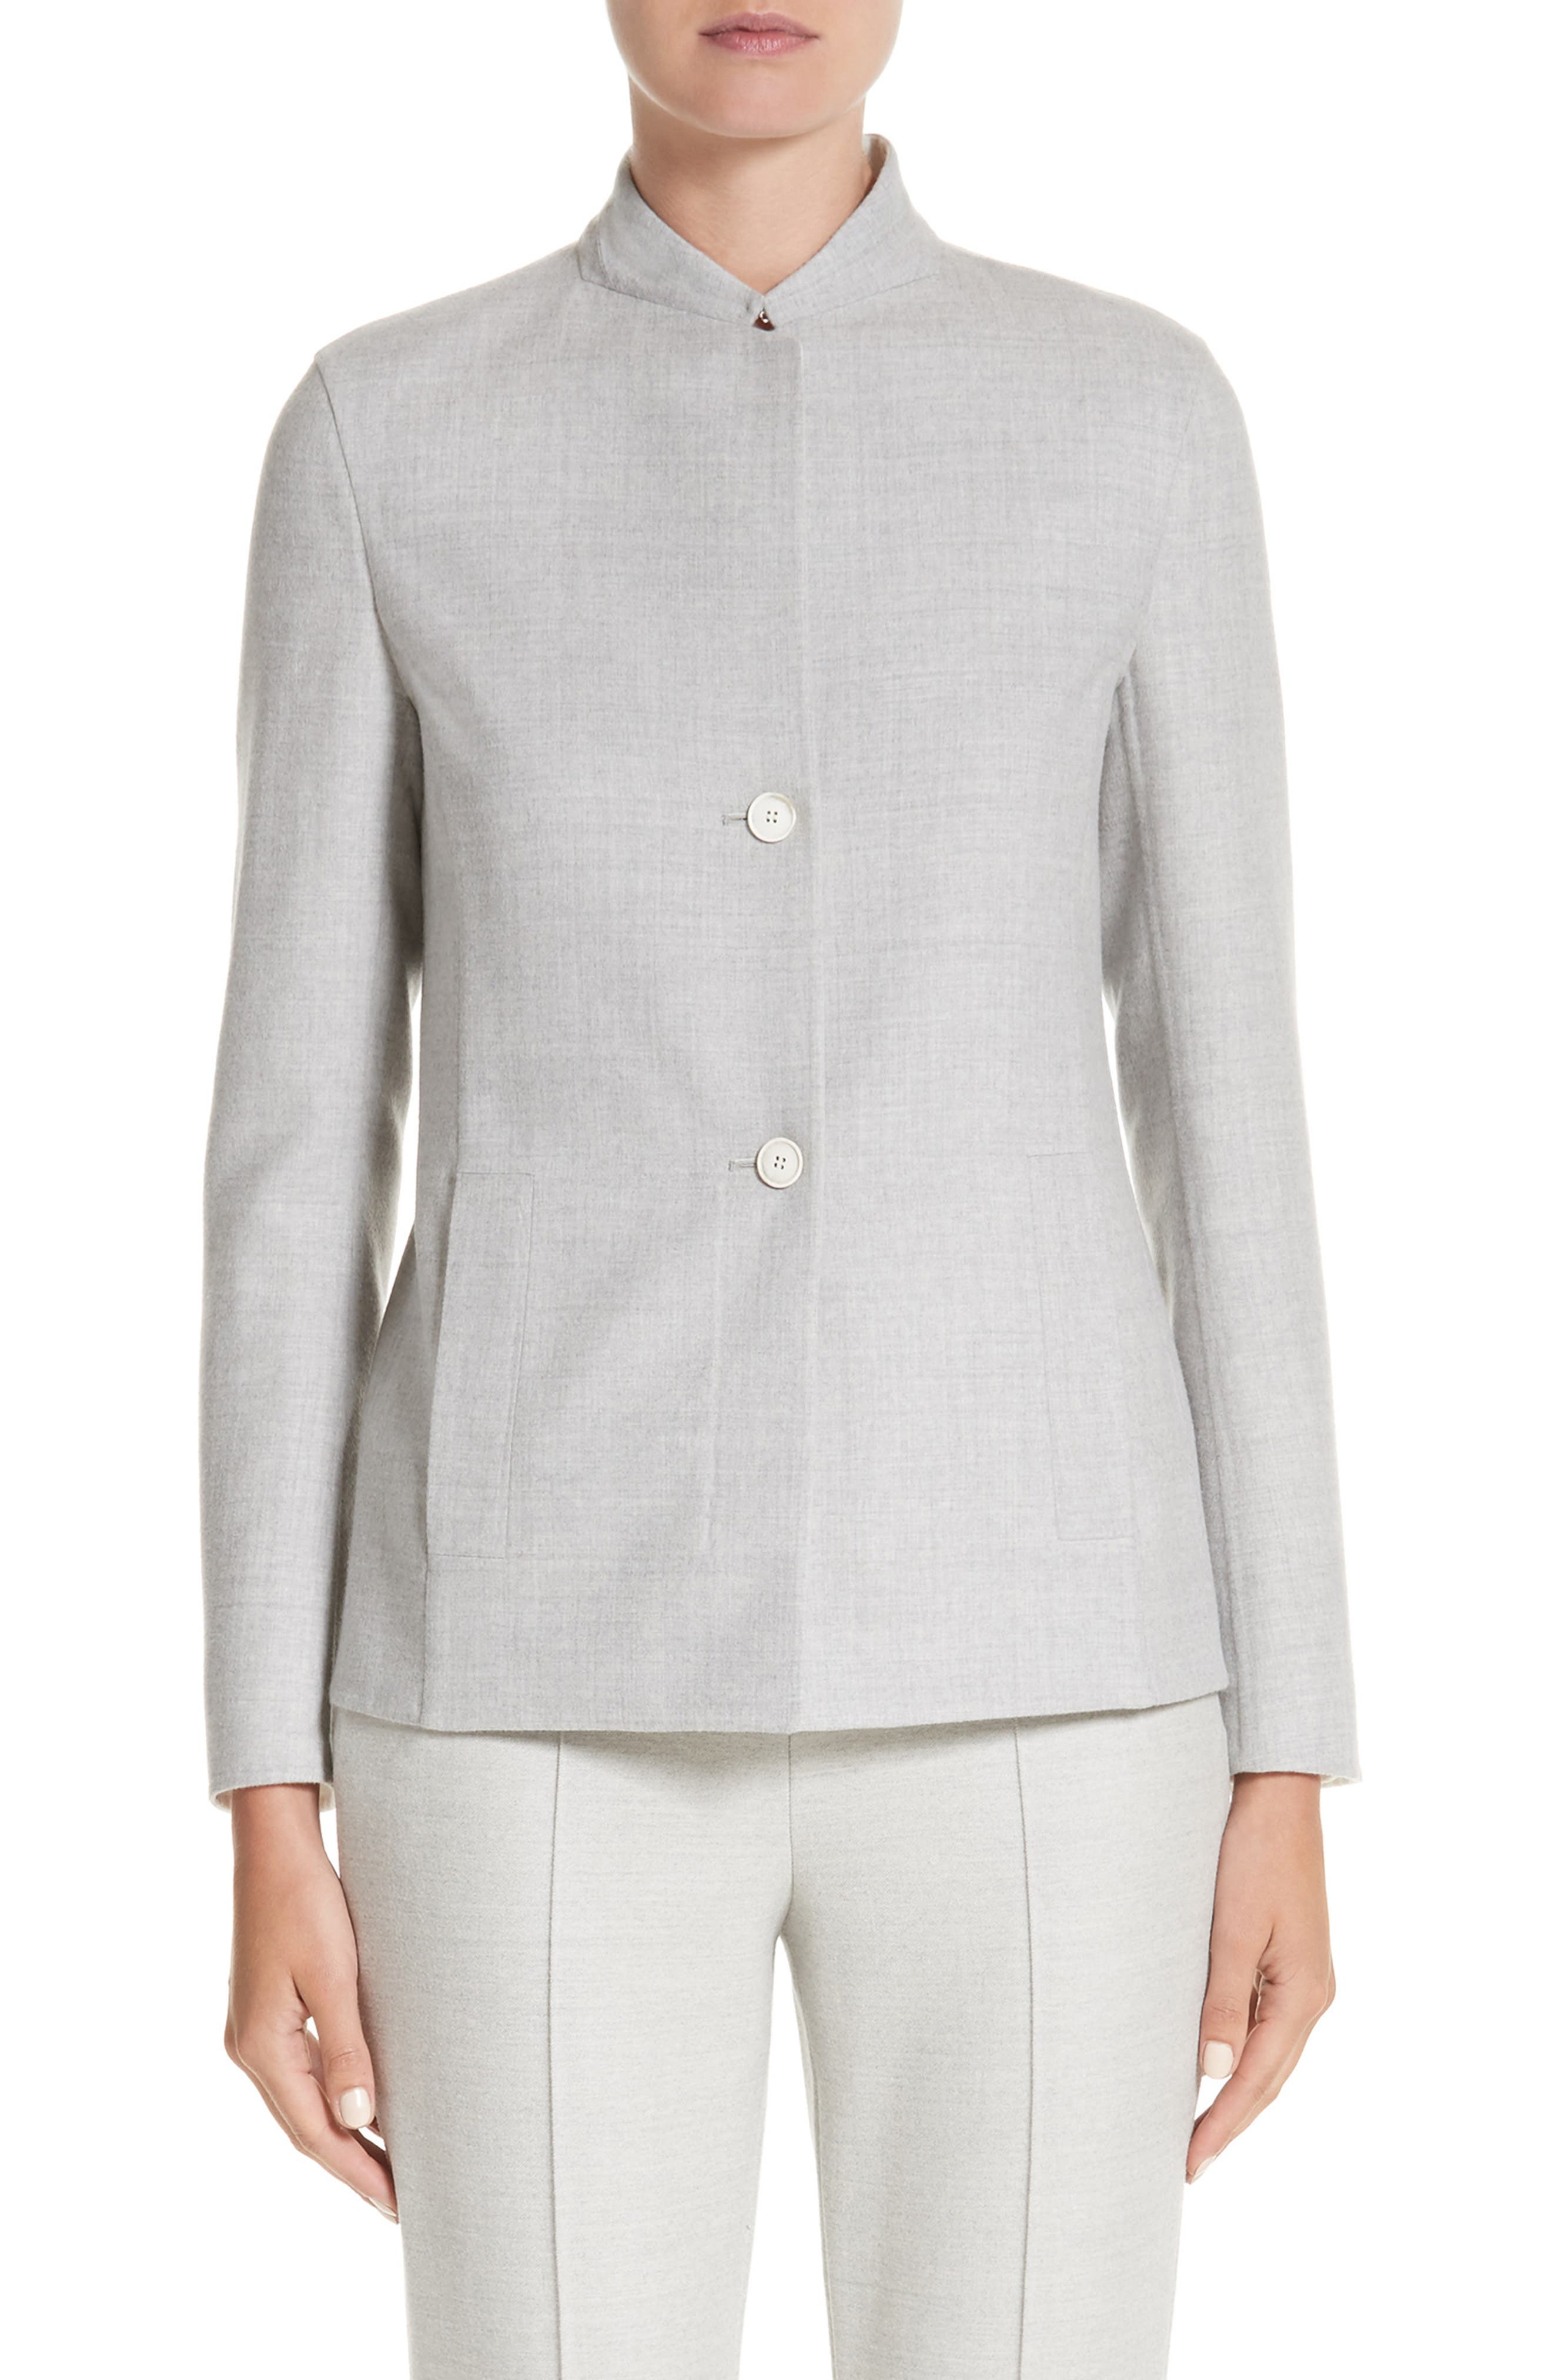 Stretch Wool & Silk Bicolor Reversible Jacket,                             Main thumbnail 1, color,                             Gravel/ Off White